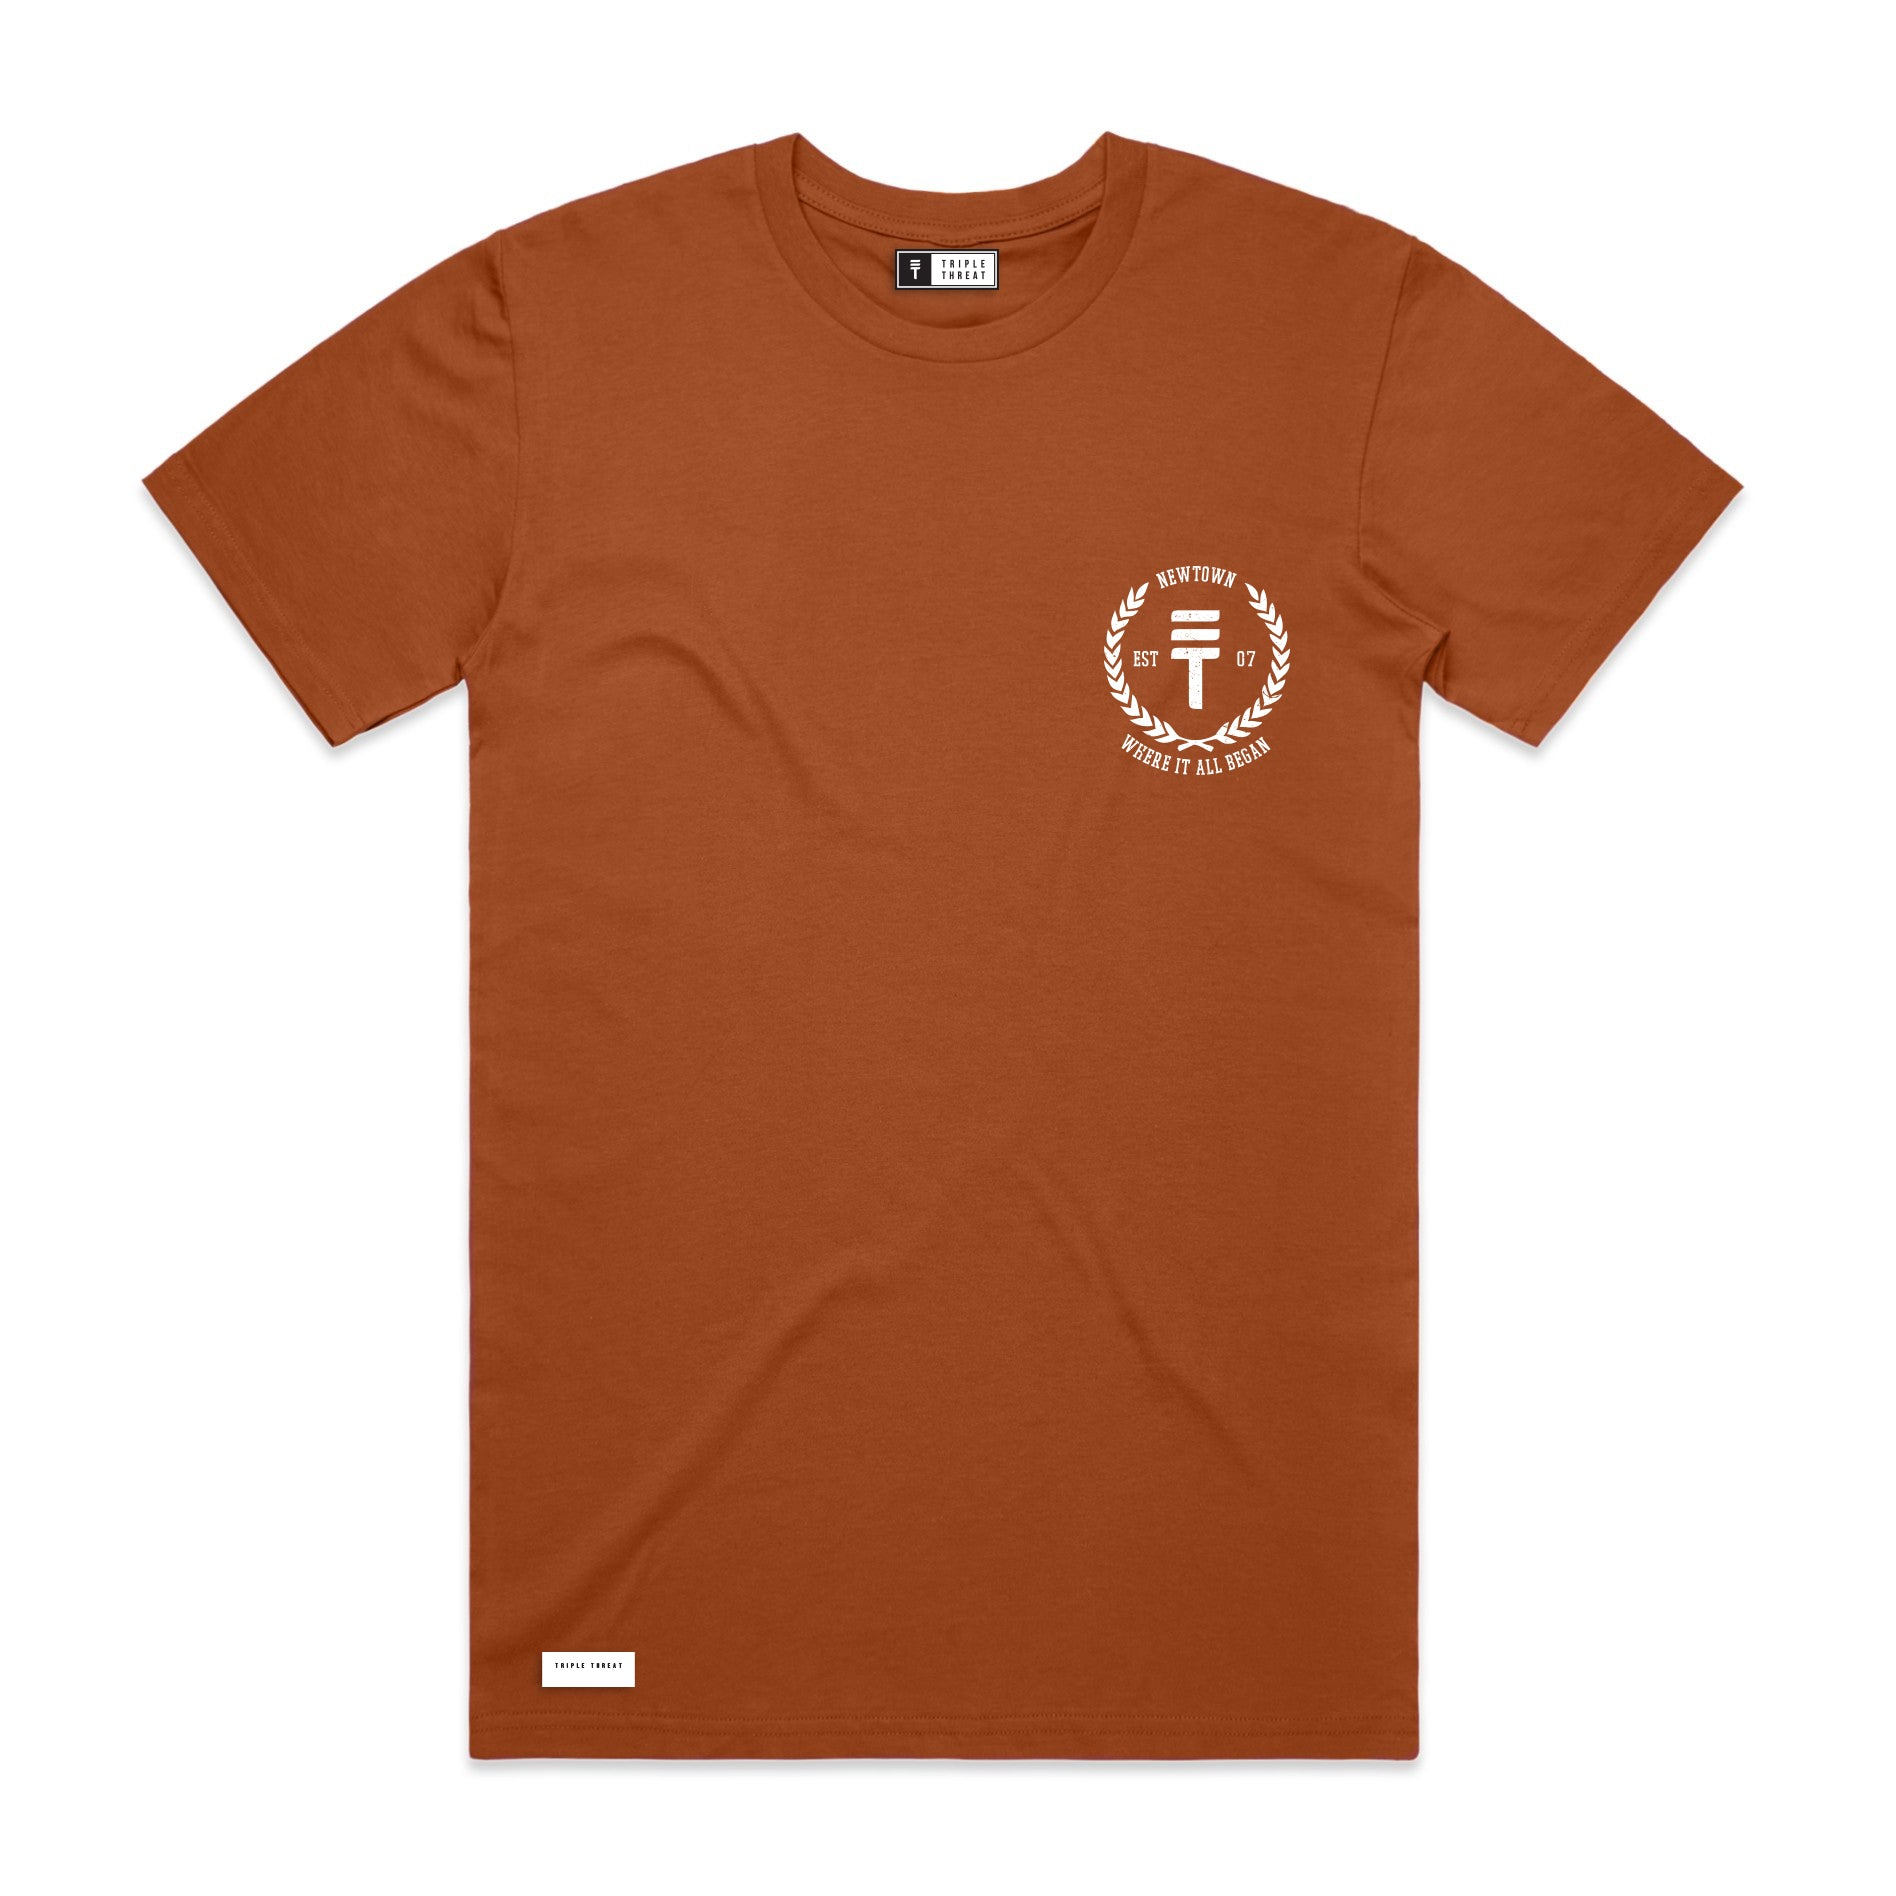 ORIGIN T-SHIRT - COPPER